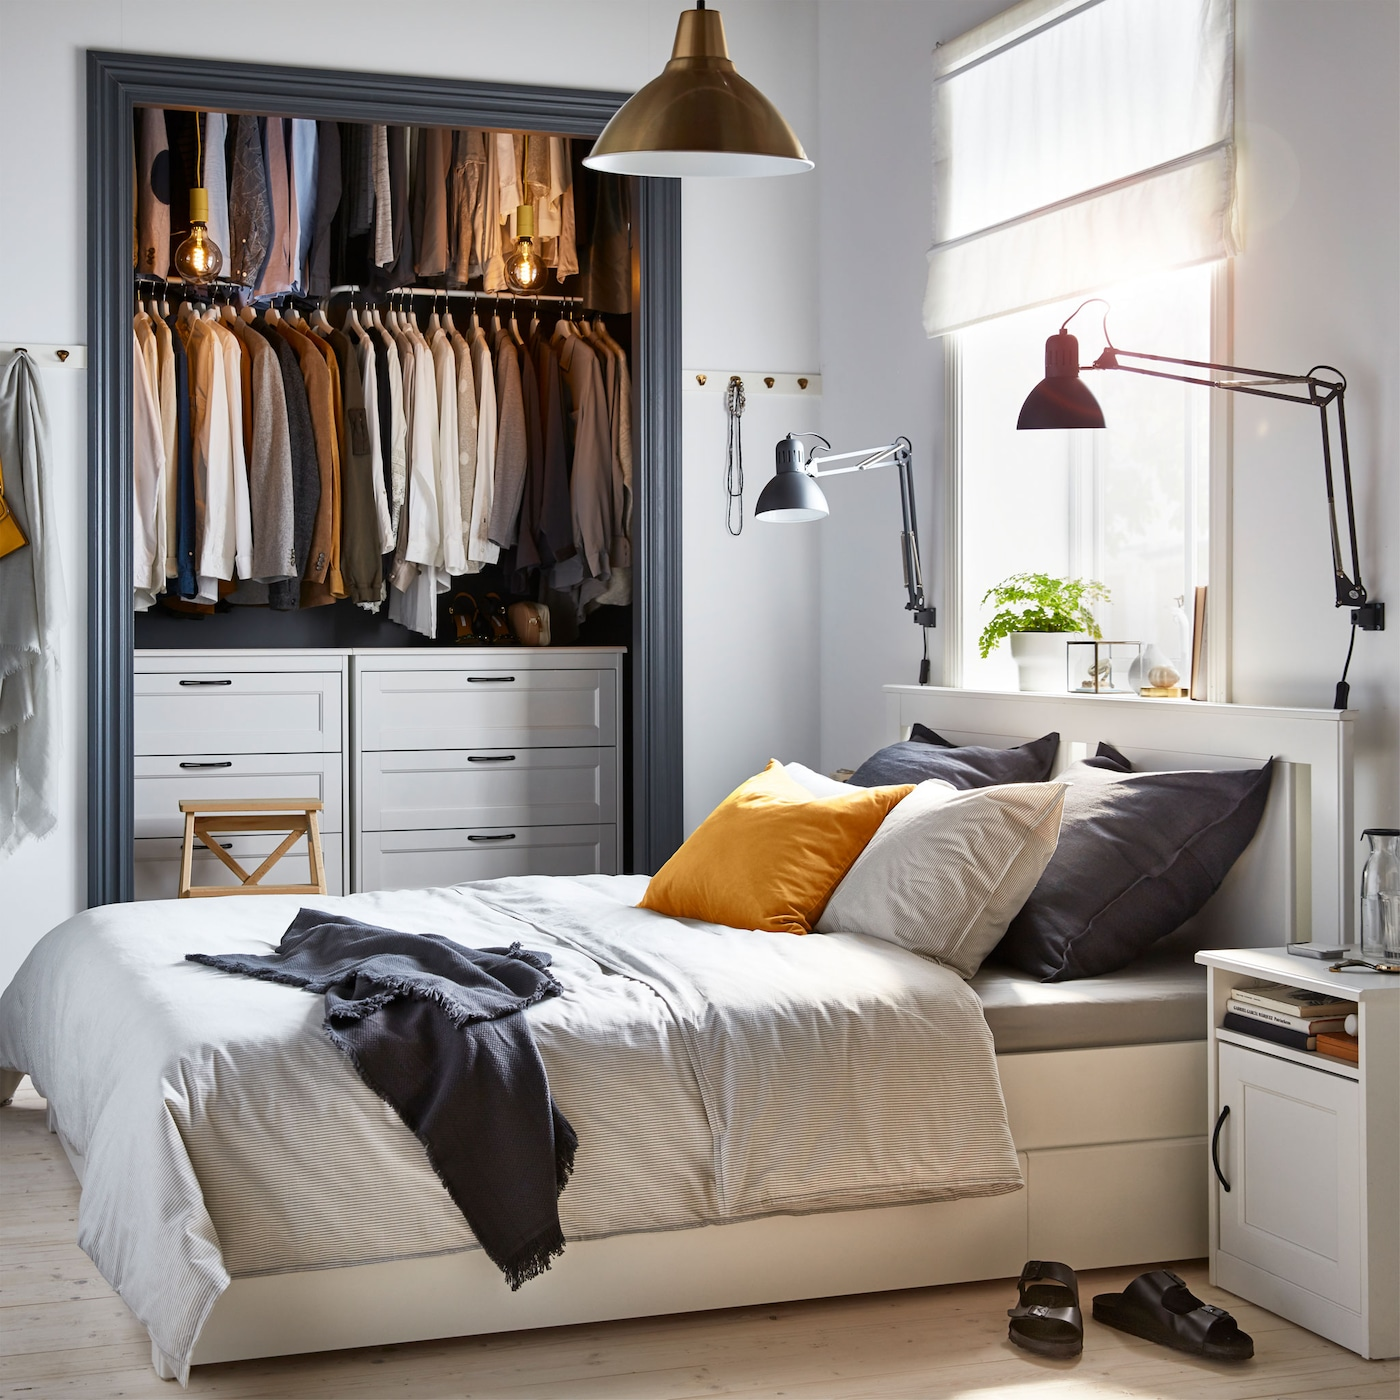 Tasteful stylish and storage friendly \u2013 this bedroom has it all & Bedroom furniture inspiration | IKEA Thailand - IKEA